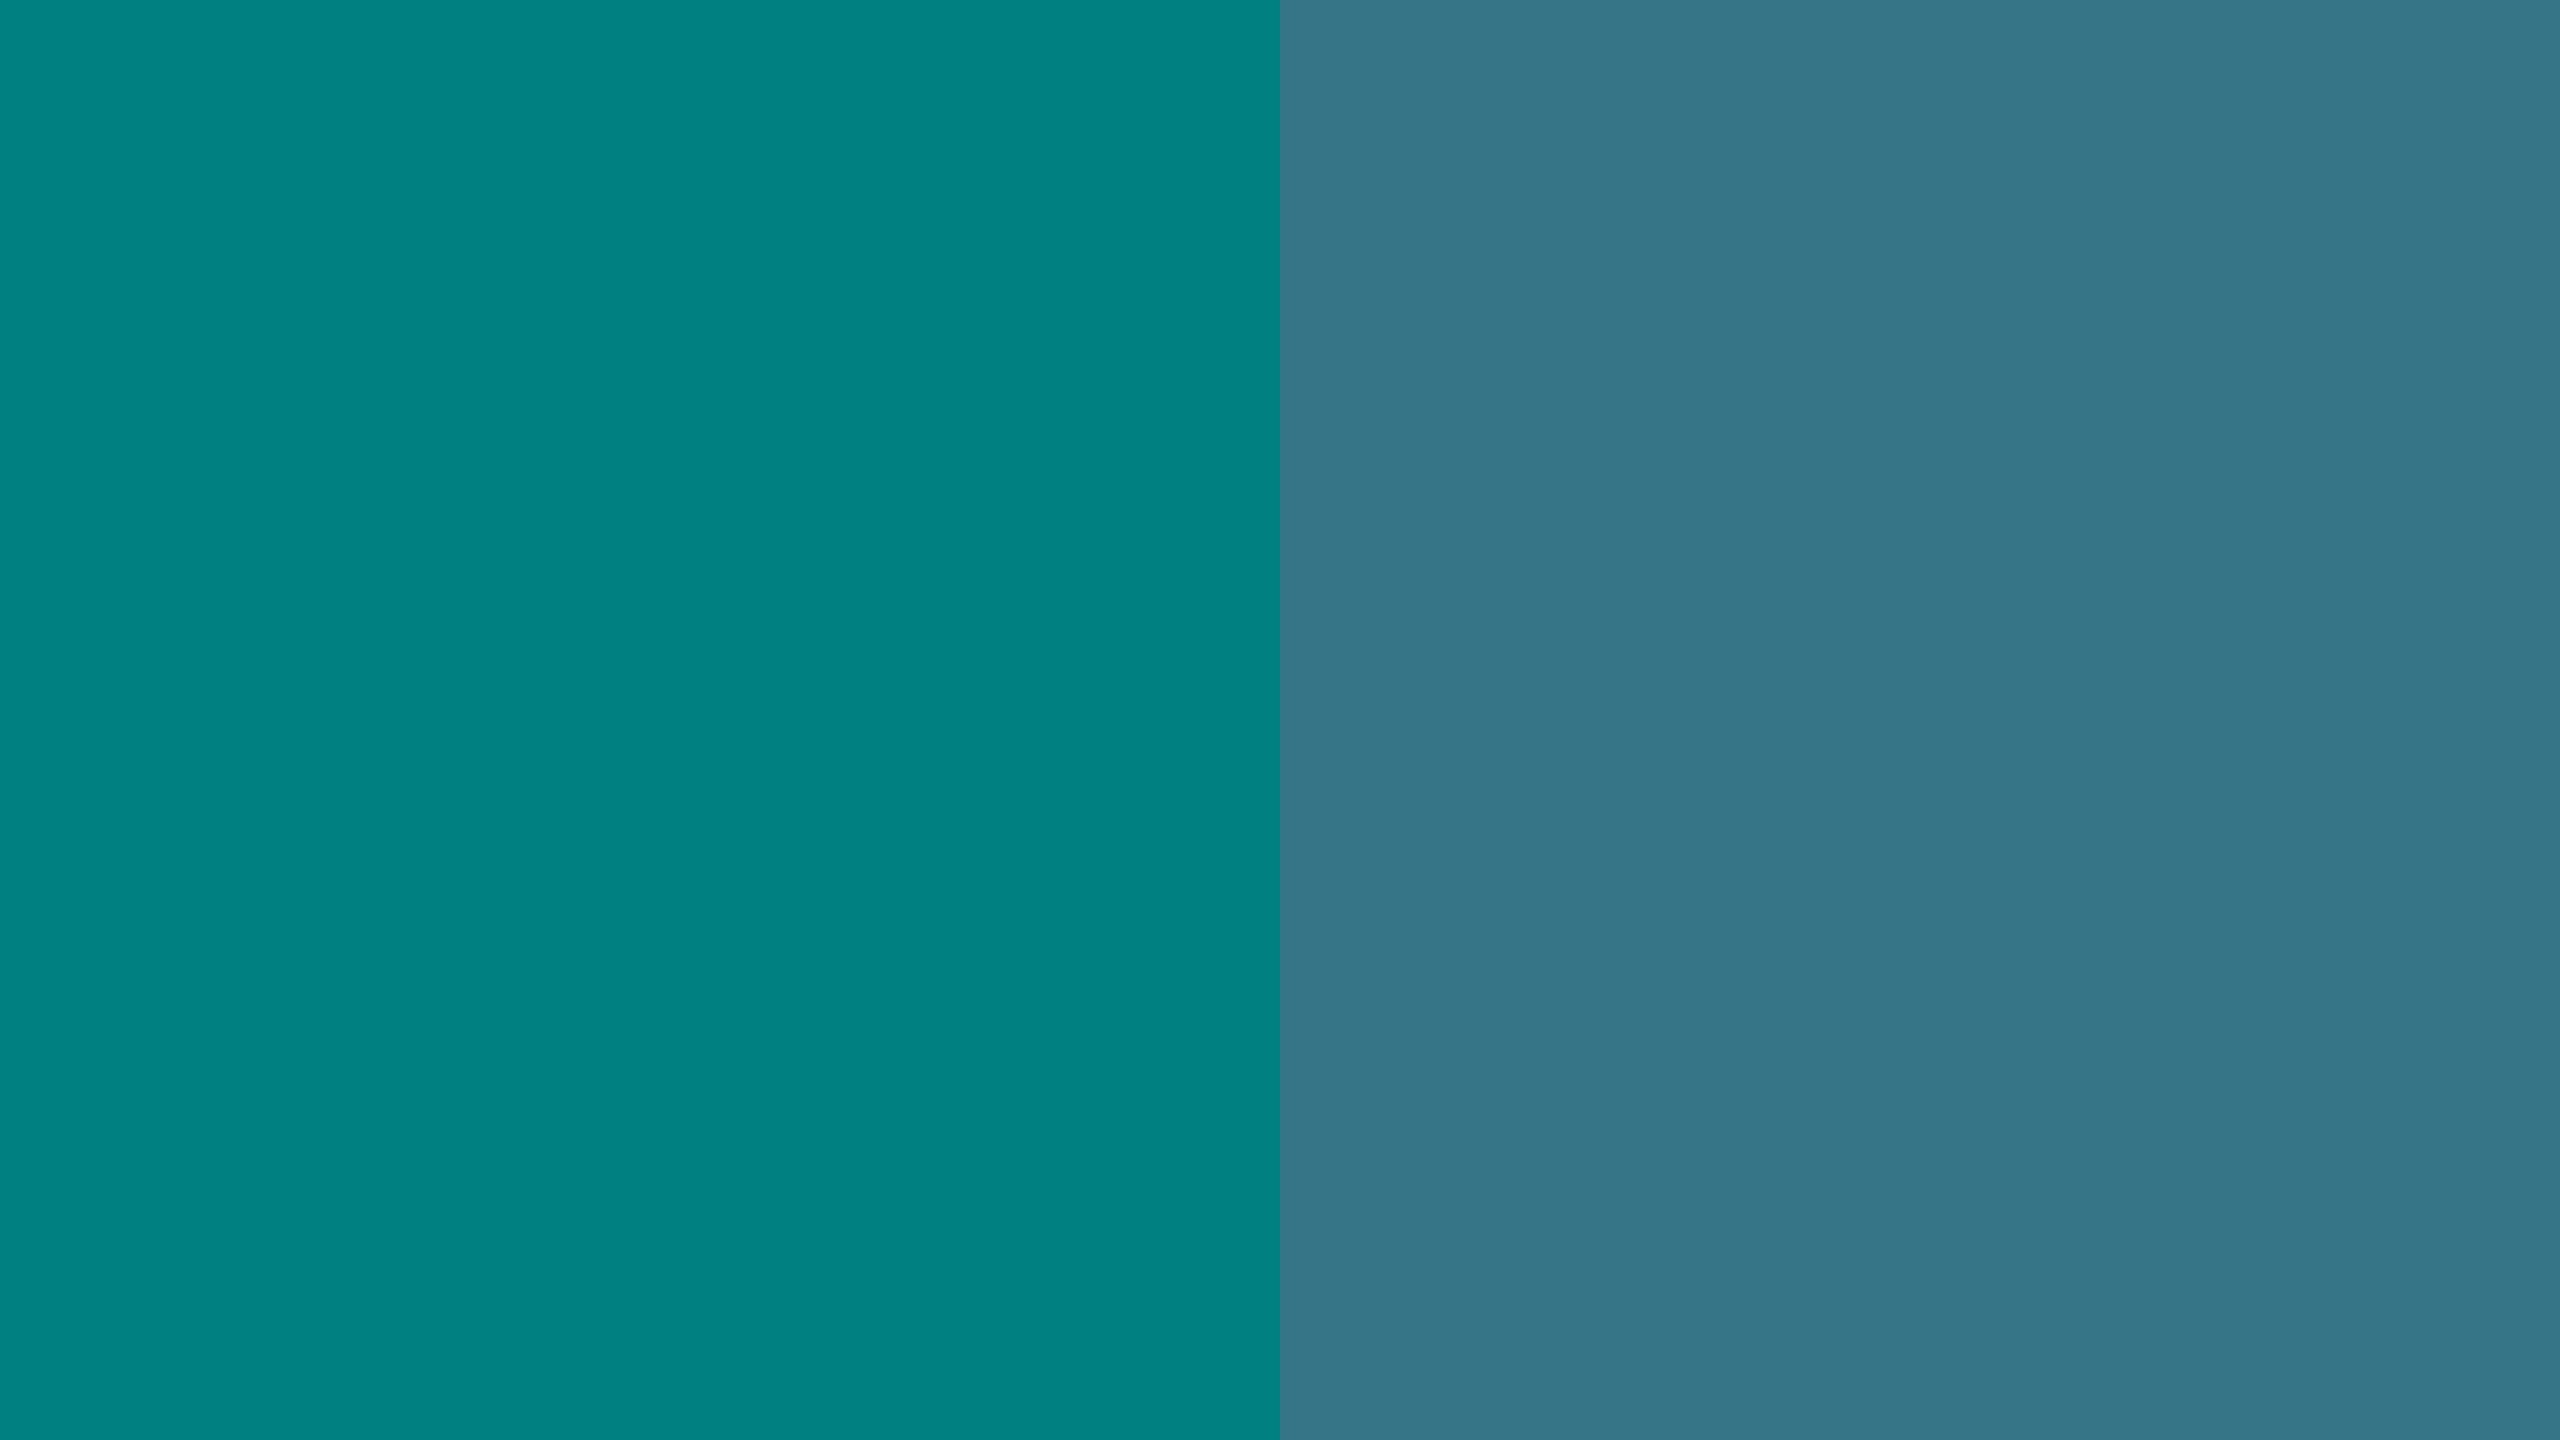 2560x1440 resolution Teal and Teal Blue solid two color background 2560x1440